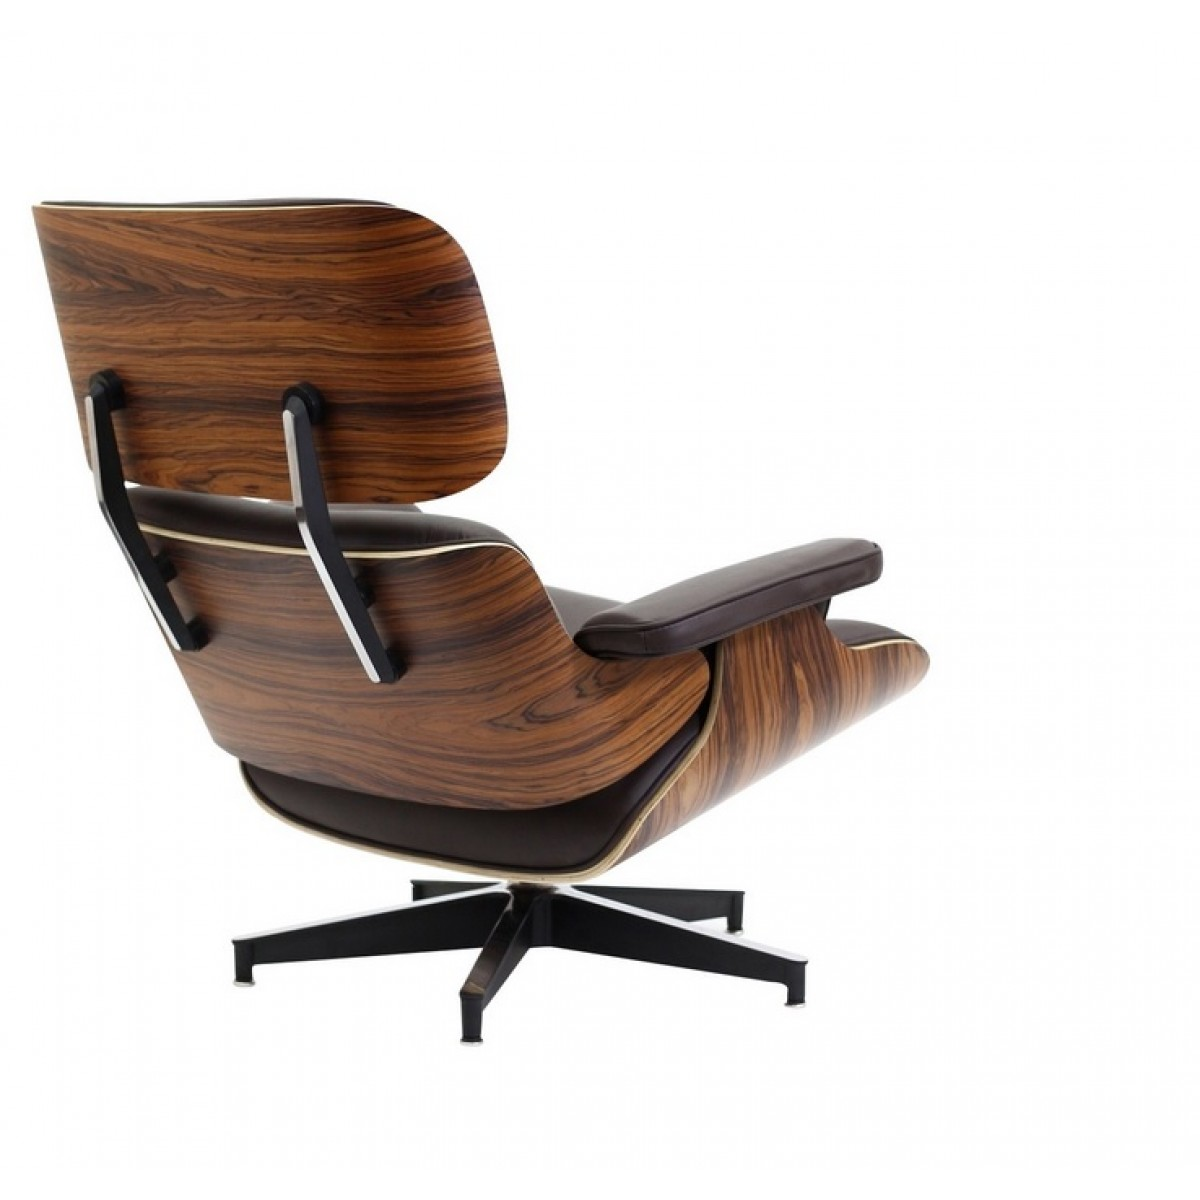 Eames style lounge chair and ottoman brown leather walnut wood for Chair and footstool